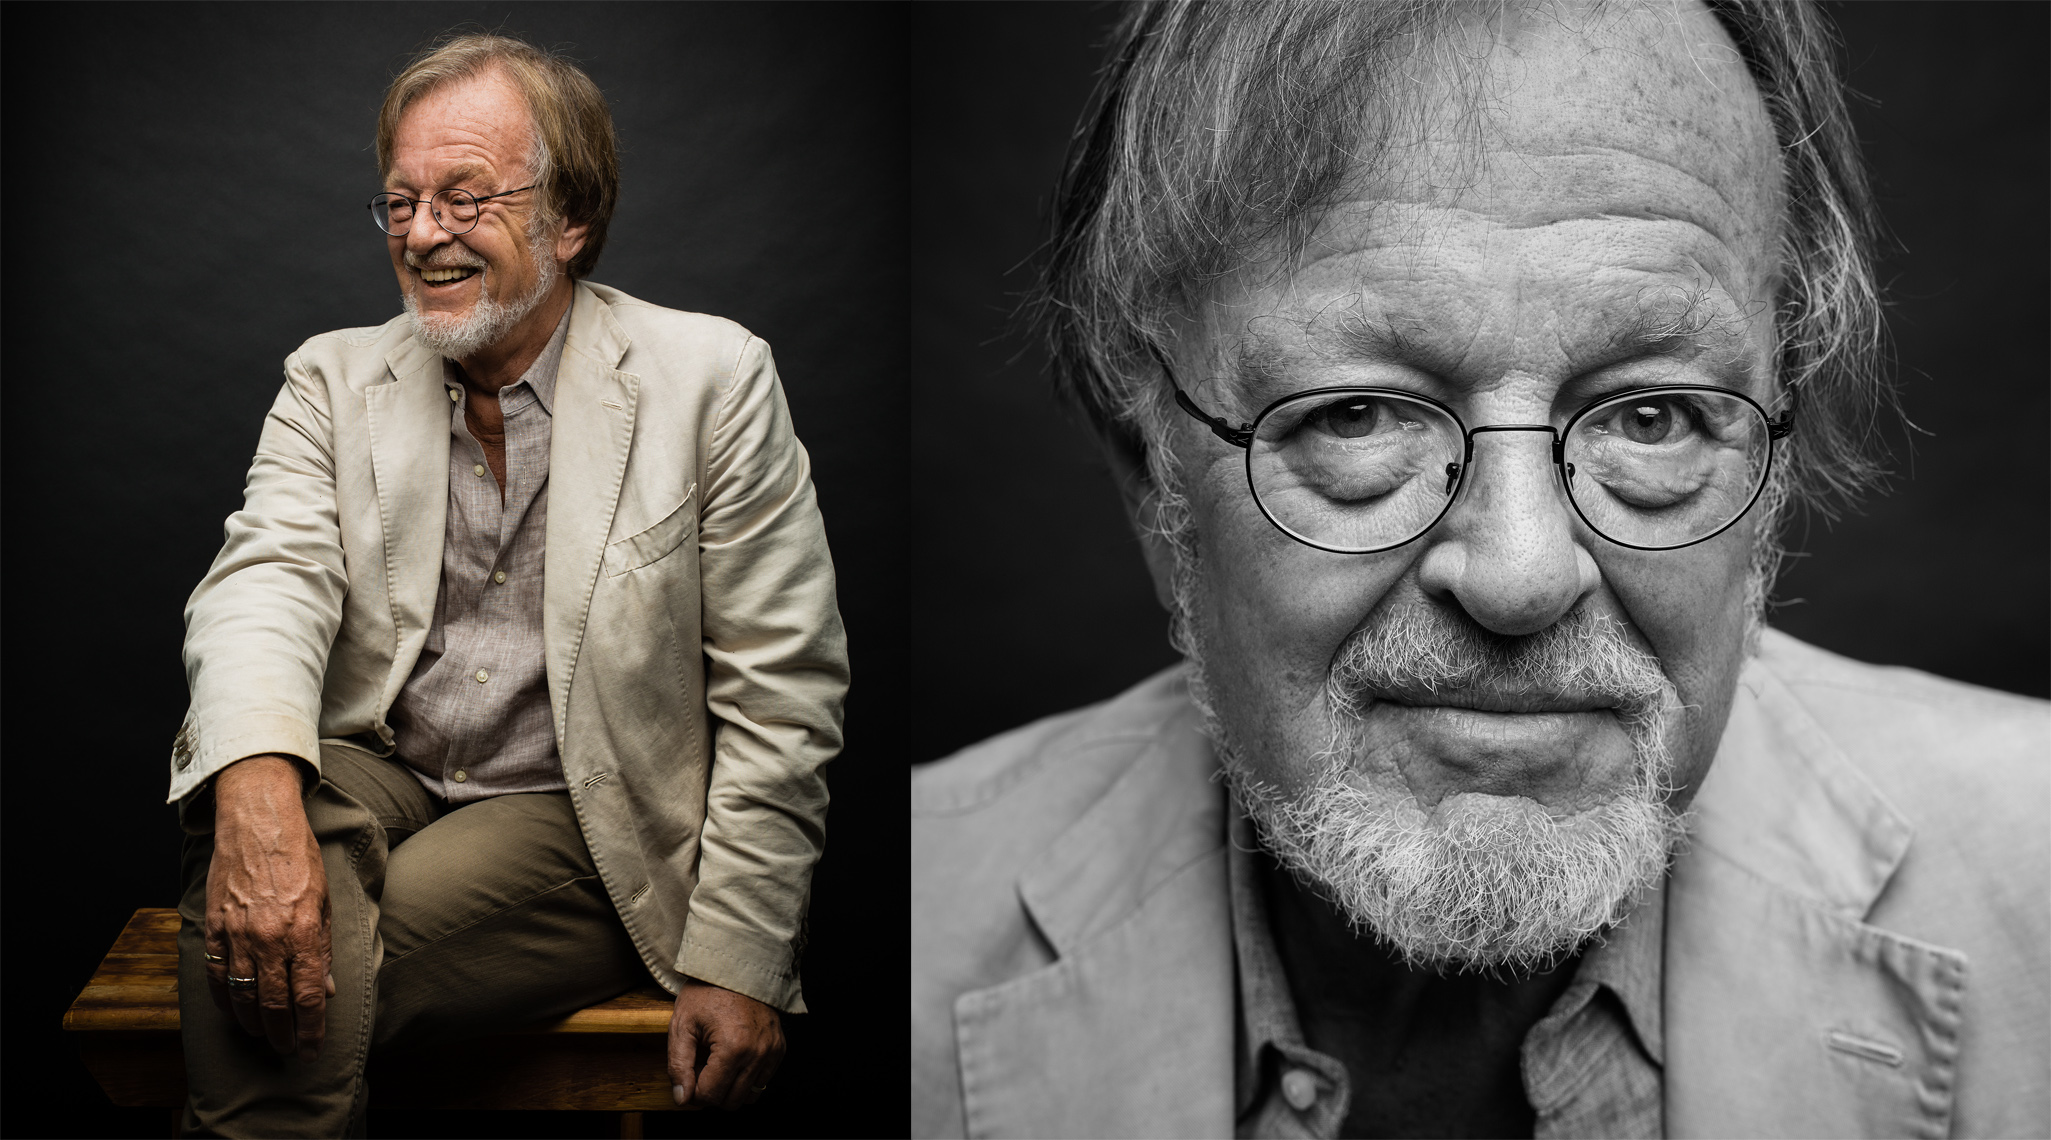 BERNARD CORNWELL, AUTHOR AND HISTORIAN